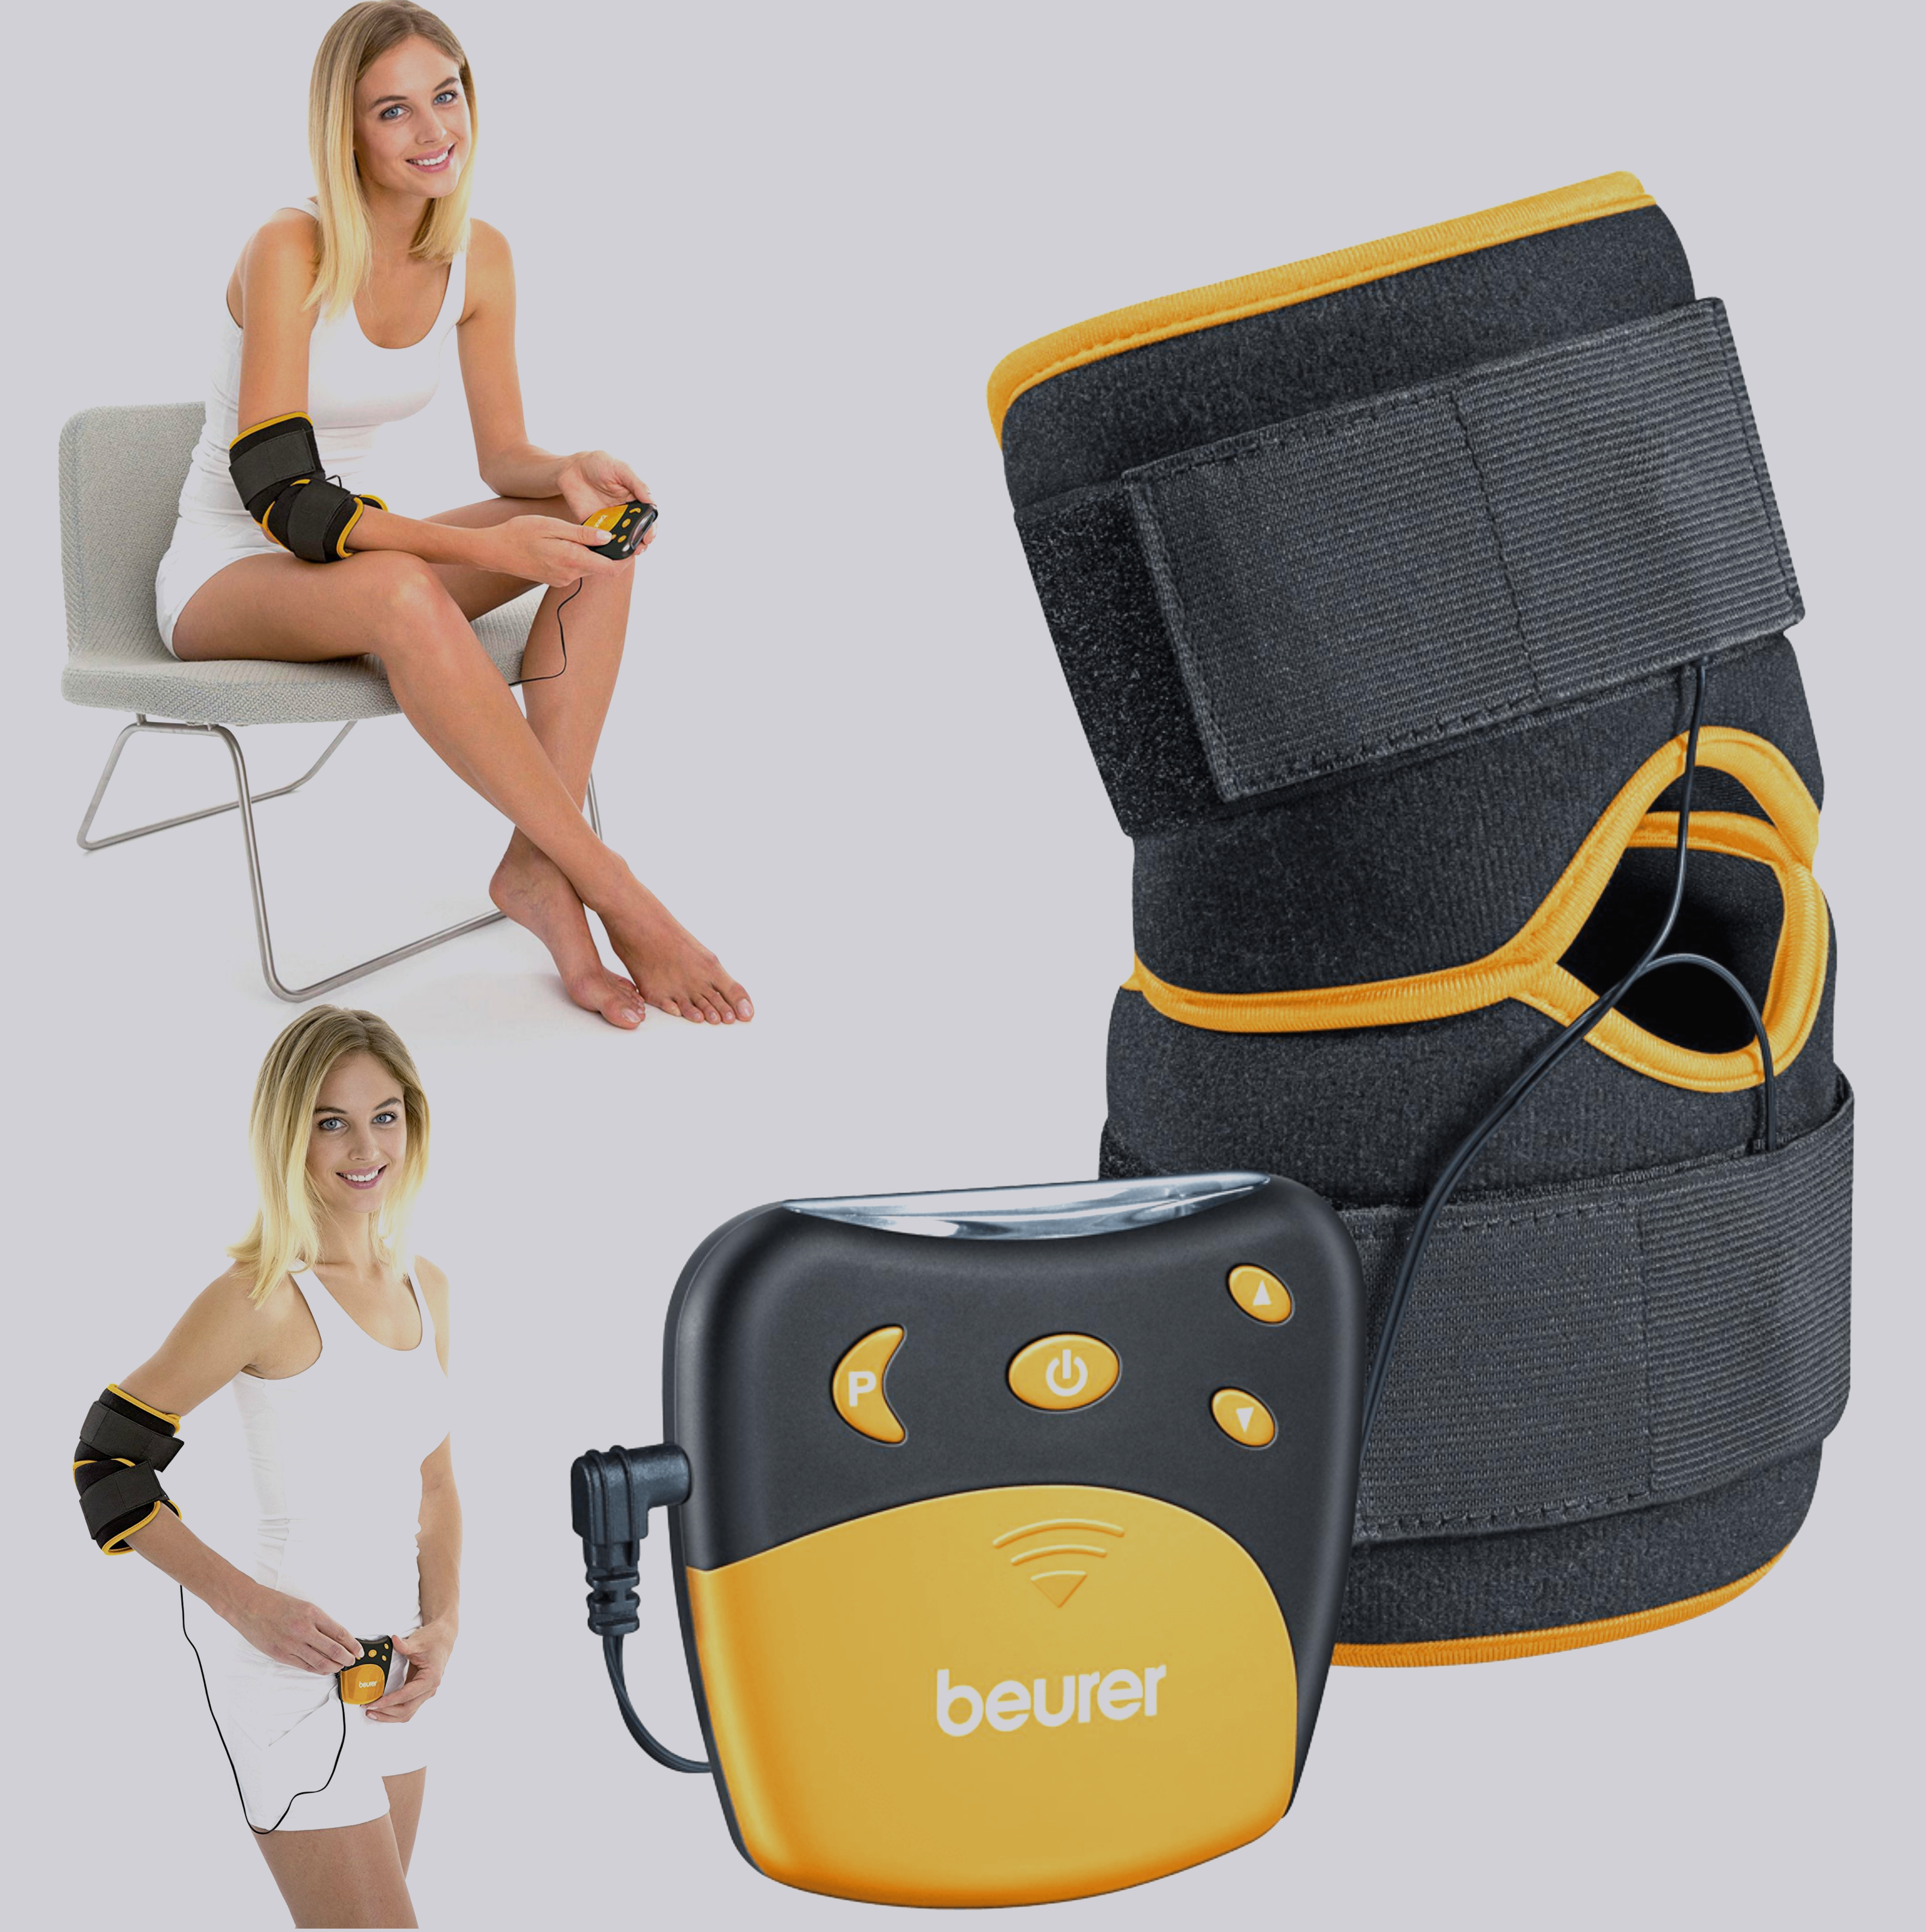 Beurer EM29 2 in 1 Knee-Elbow Pain Relief TENS Therapy|Belt Clip|Universall Cuff